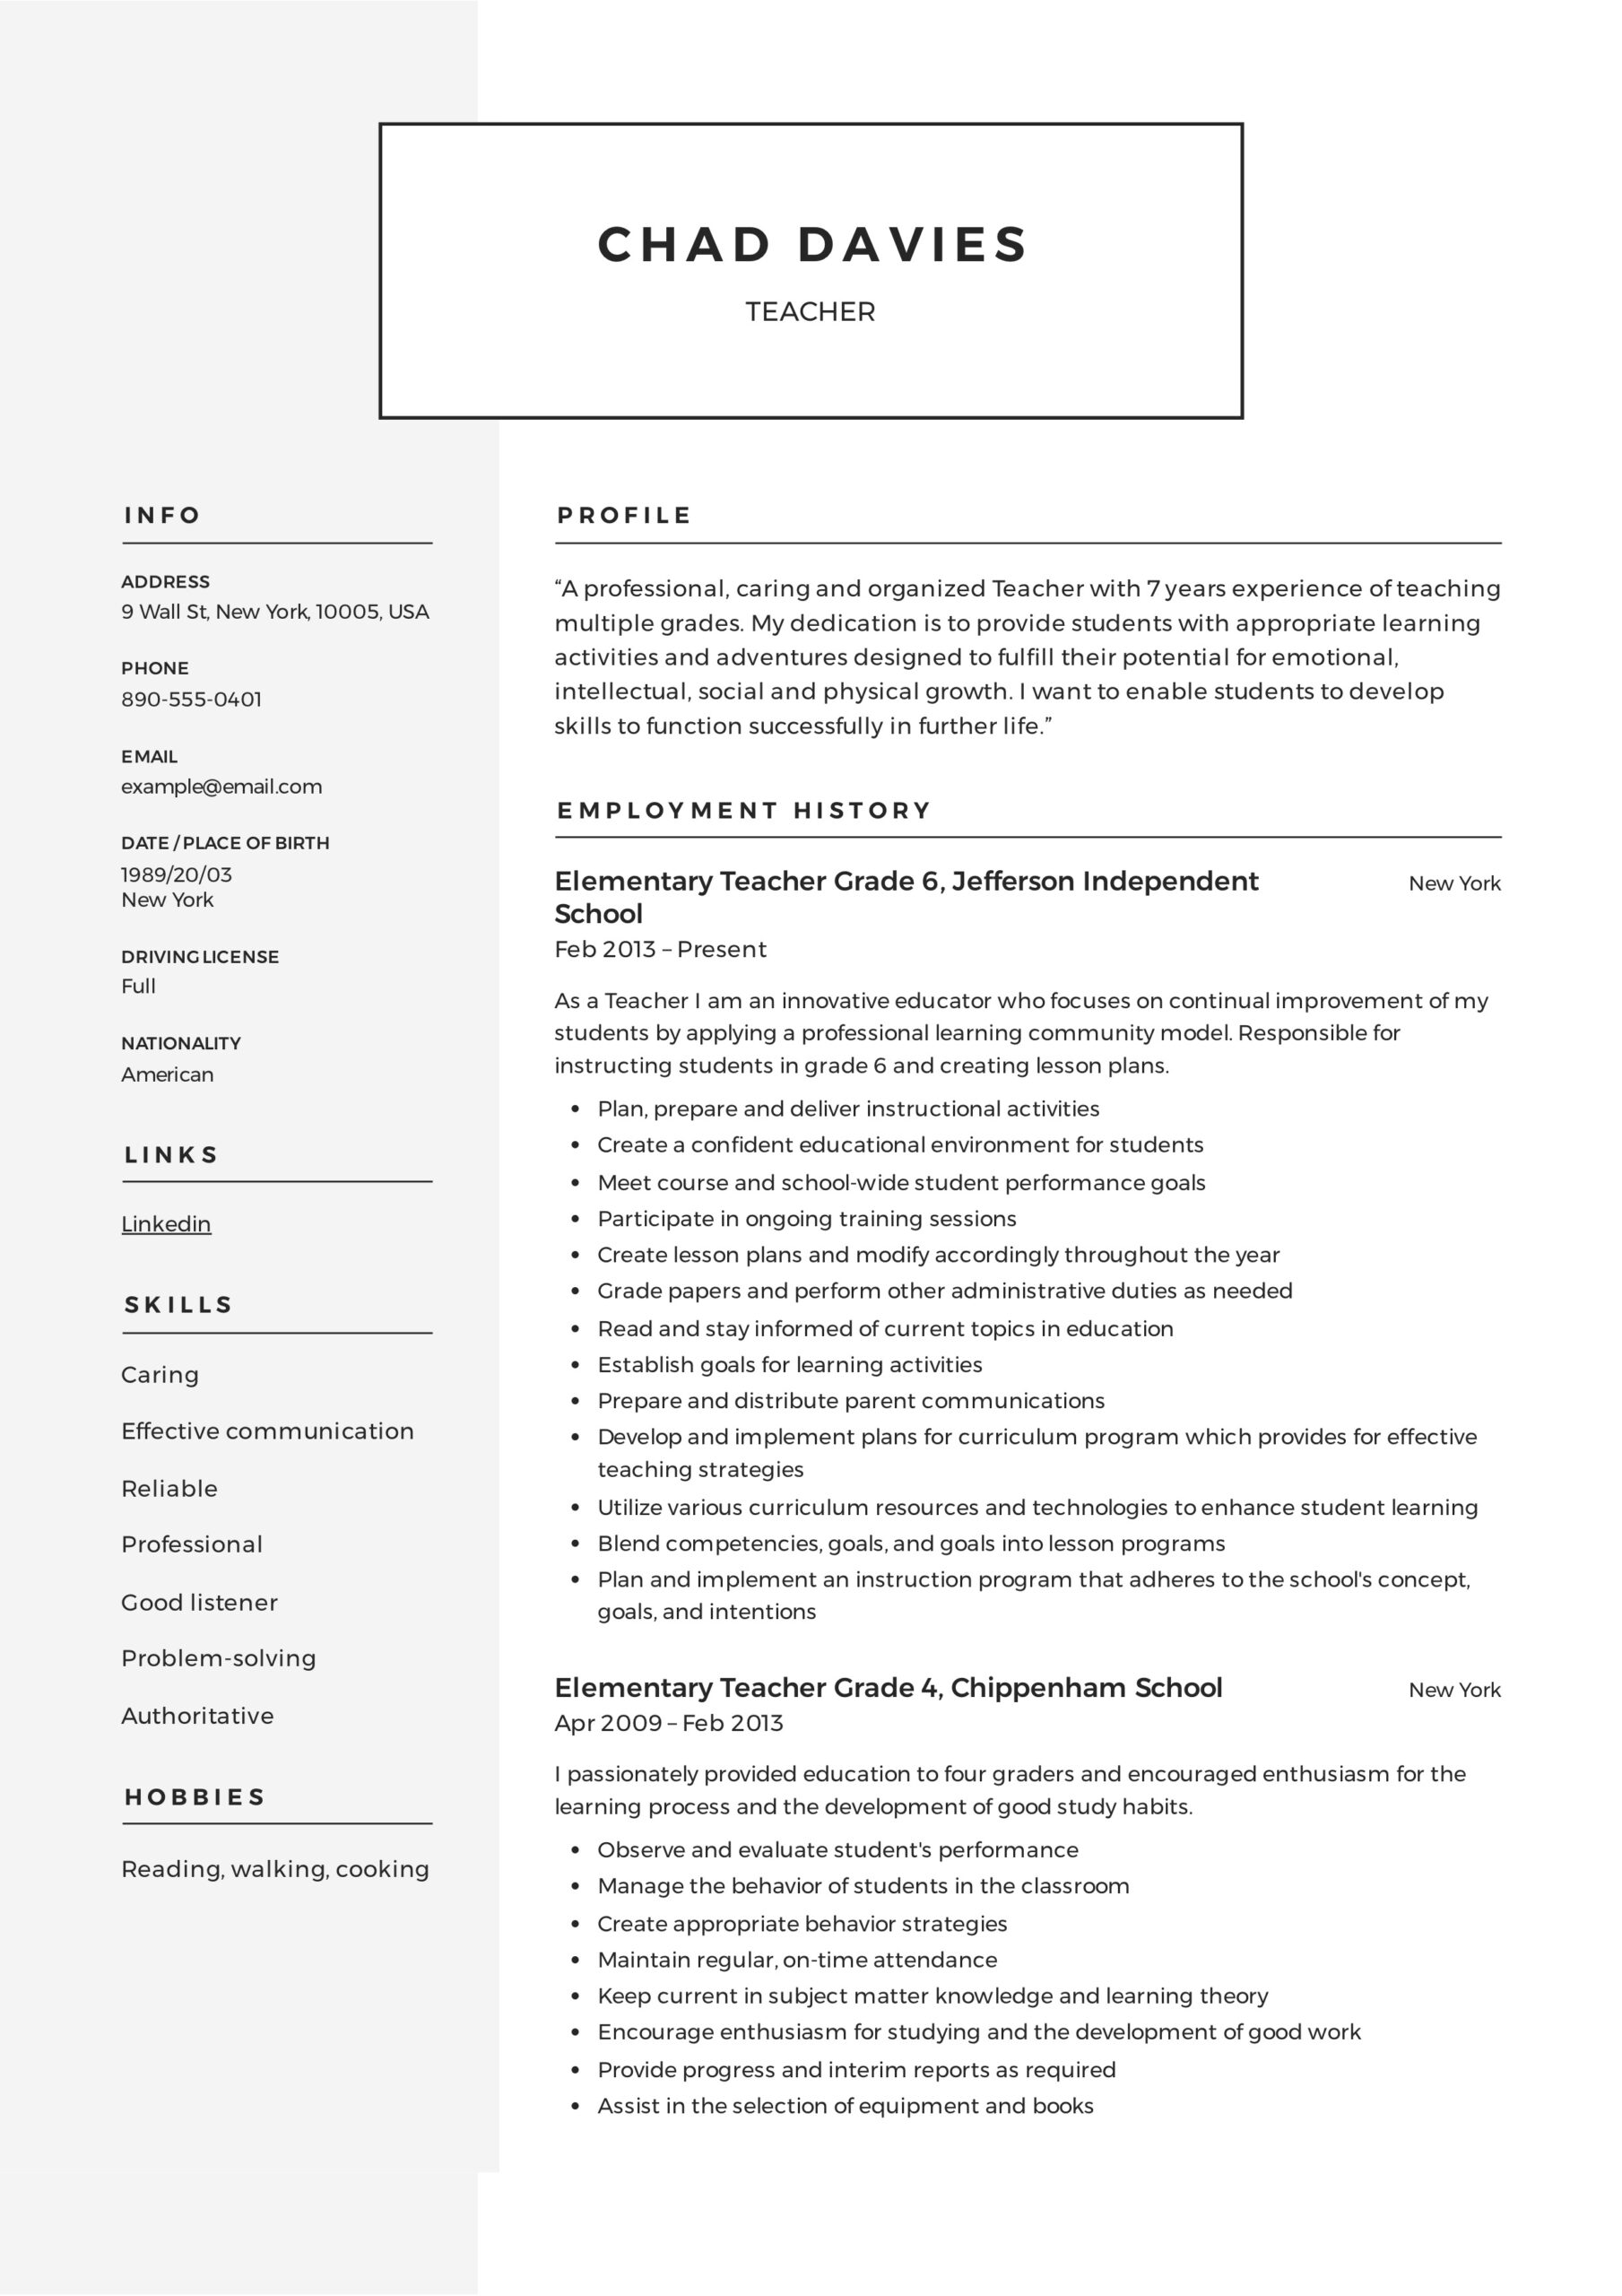 teacher resume writing guide examples pdf elementary templates sample microsoft office Resume Elementary Resume Templates